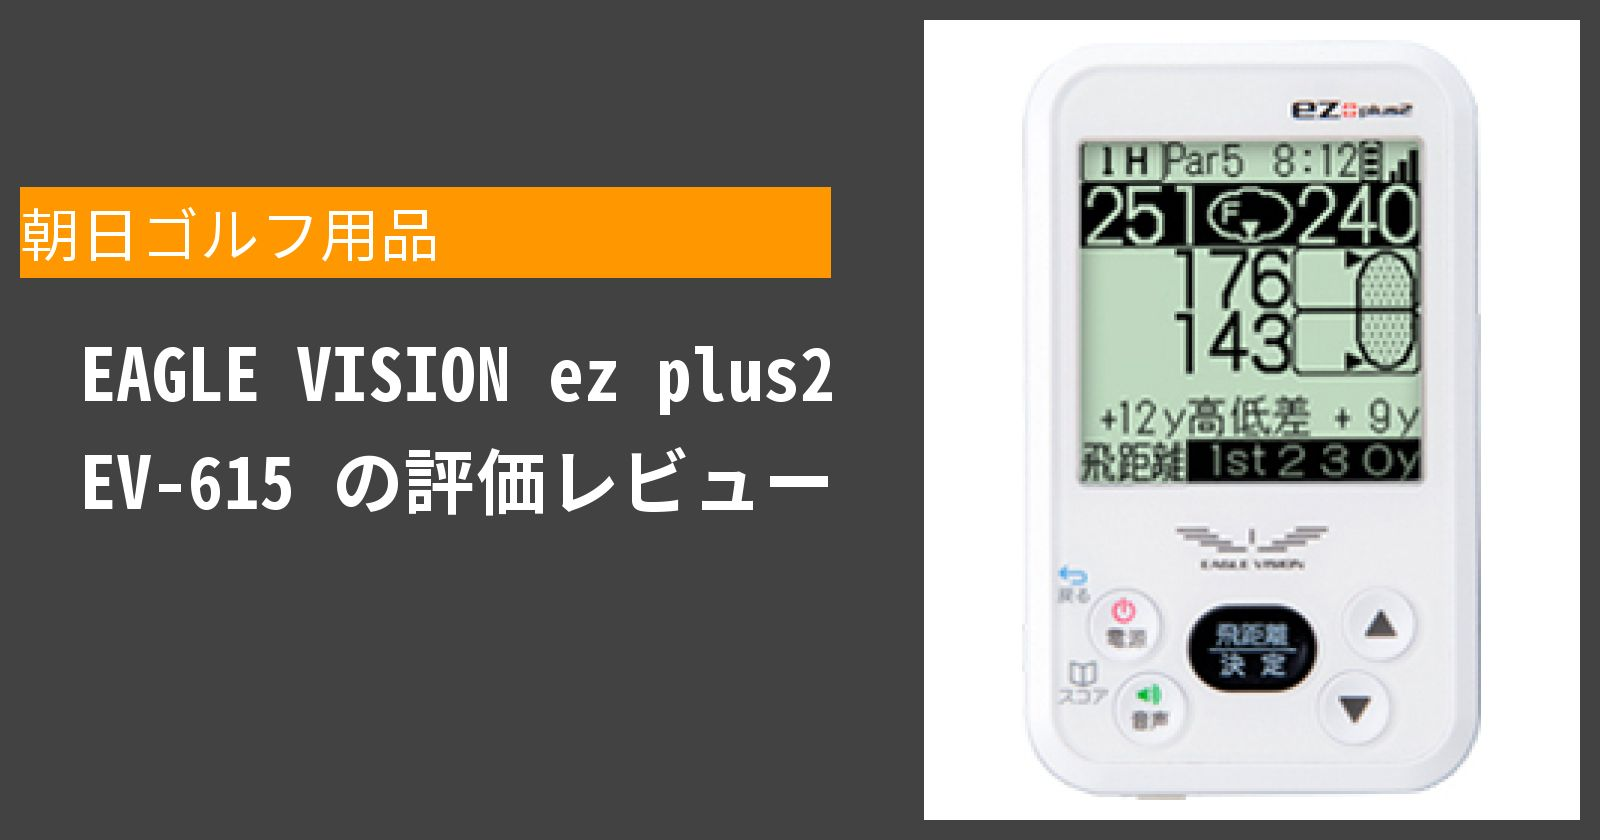 EAGLE VISION ez plus2 EV-615を徹底評価